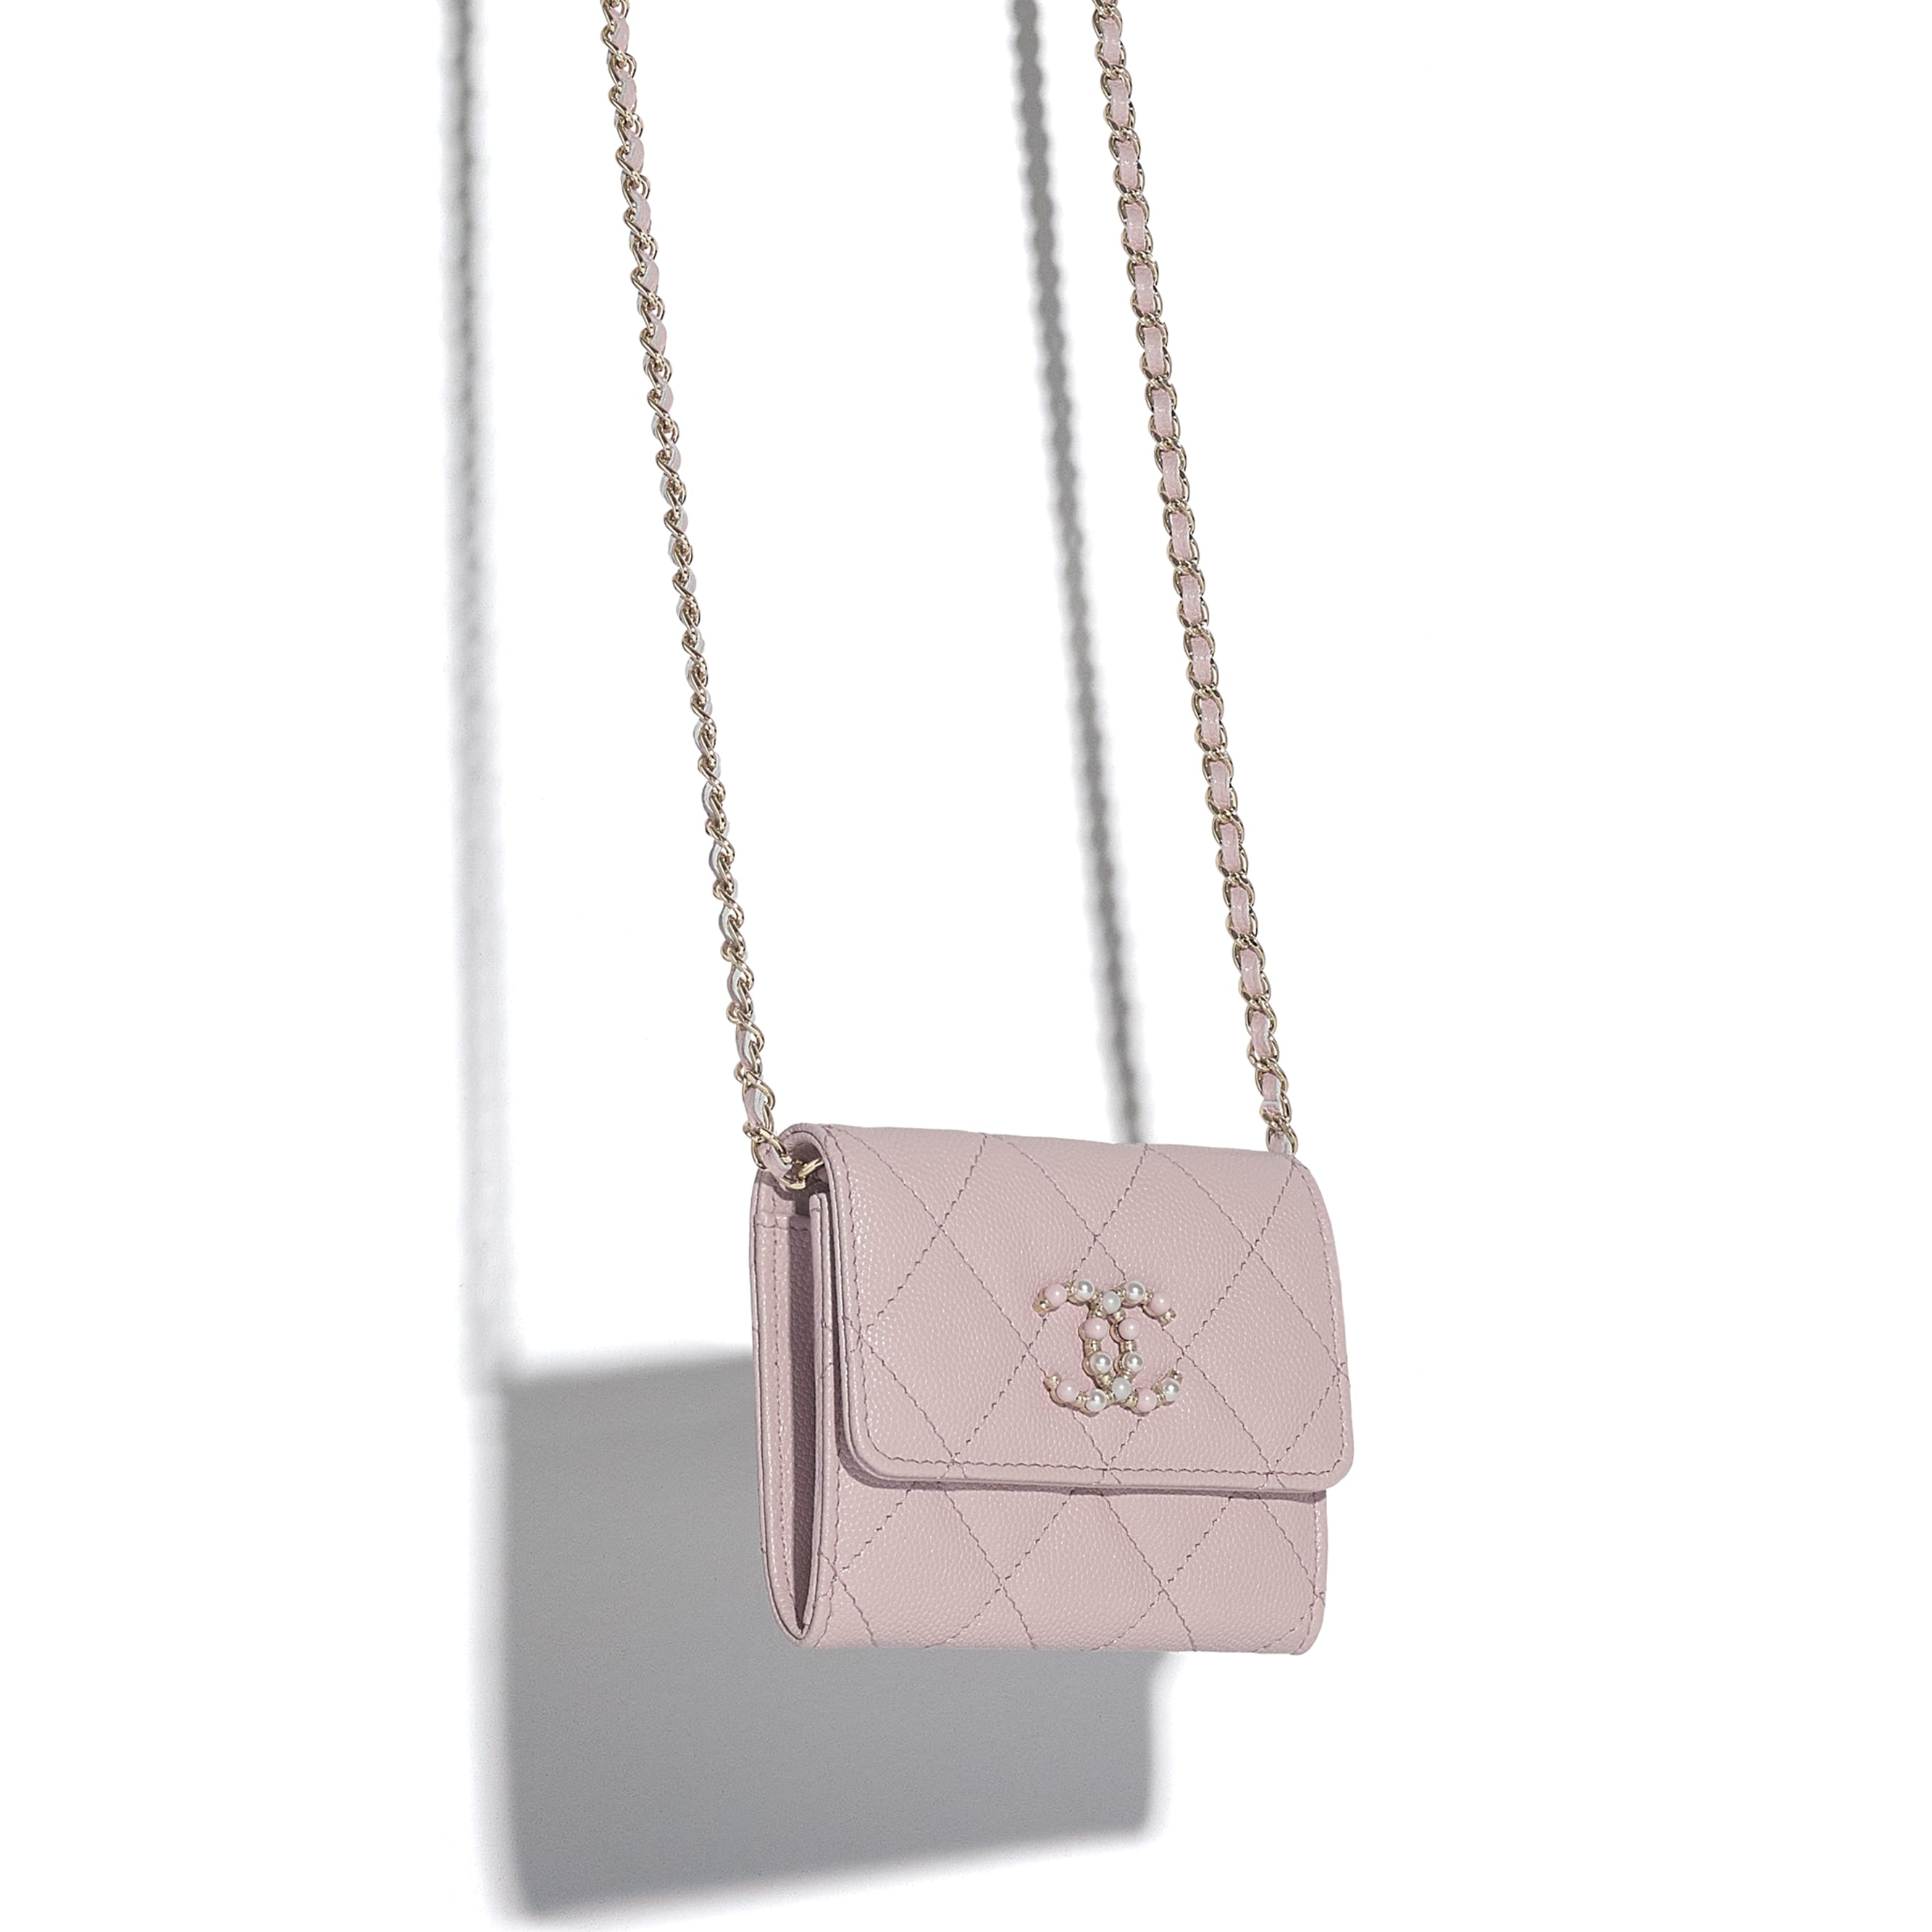 Flap Coin Purse with Chain - Light Pink - Grained Calfskin & Gold-Tone Metal - CHANEL - Other view - see standard sized version